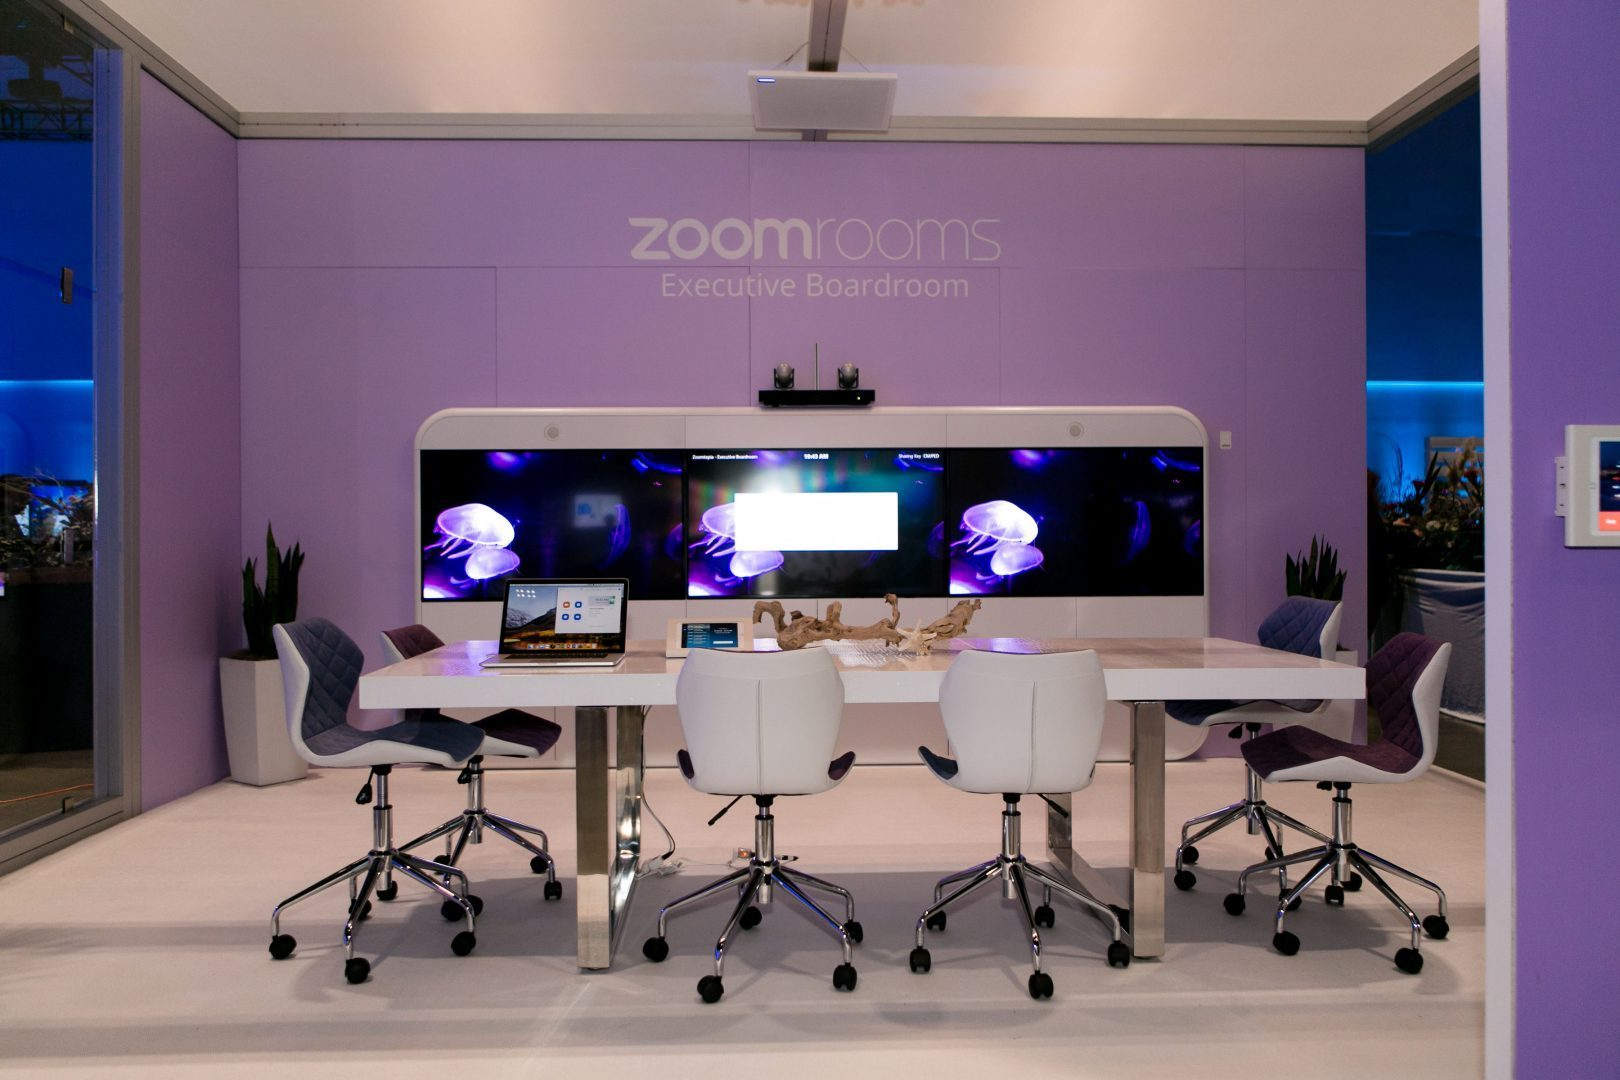 China blocks US video-conferencing tool Zoom